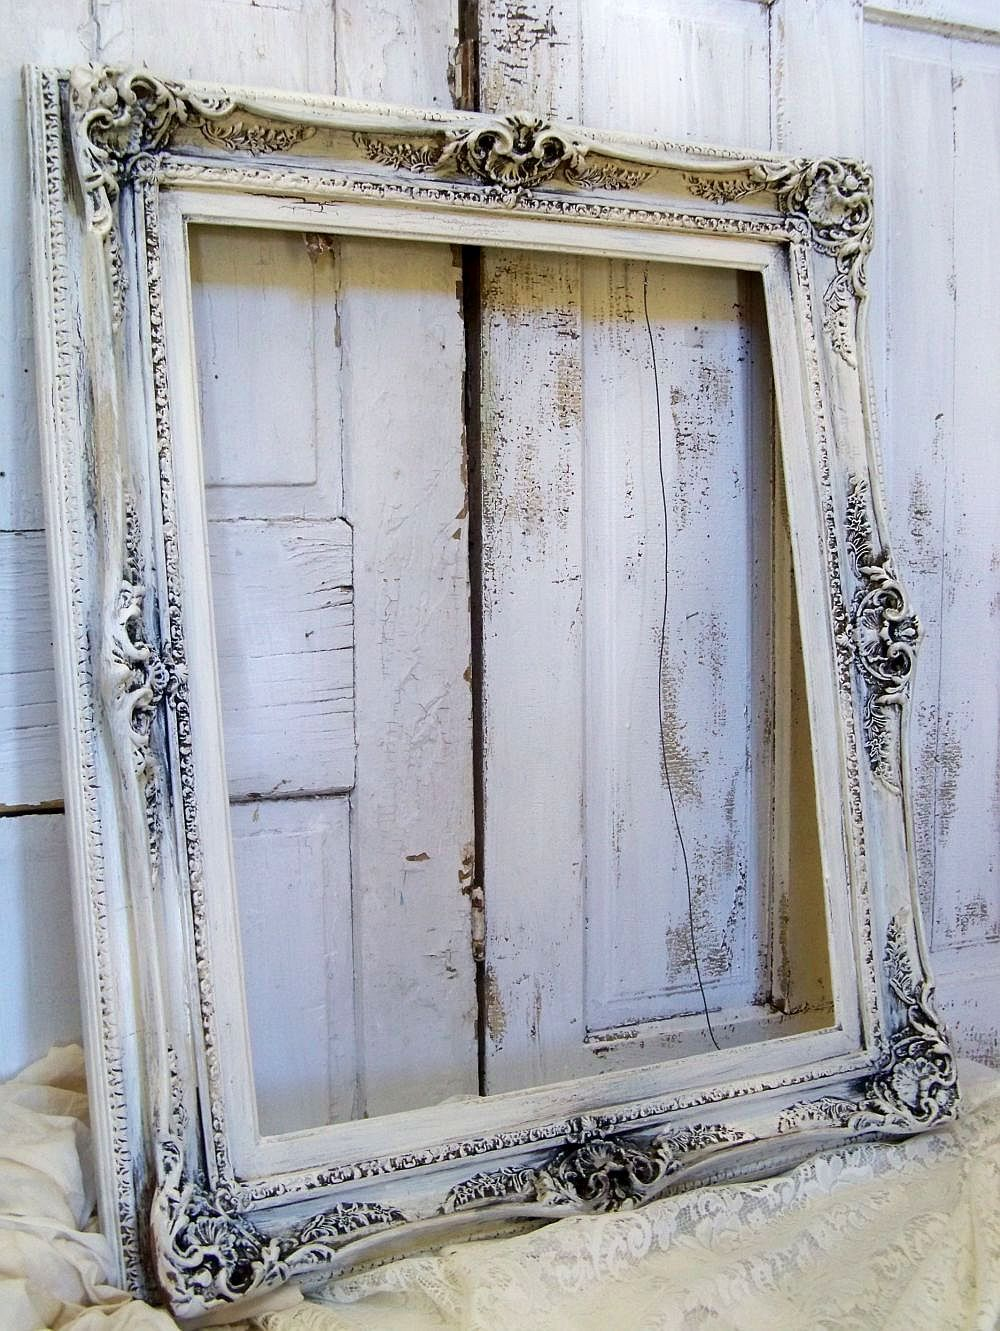 Reserved For Nathan Large Ornate Frame Hand Painted Cream Distressed Shabby Chic French Provincial Anita Spero Ornate Picture Frames Ornate Frame Frame Shabby